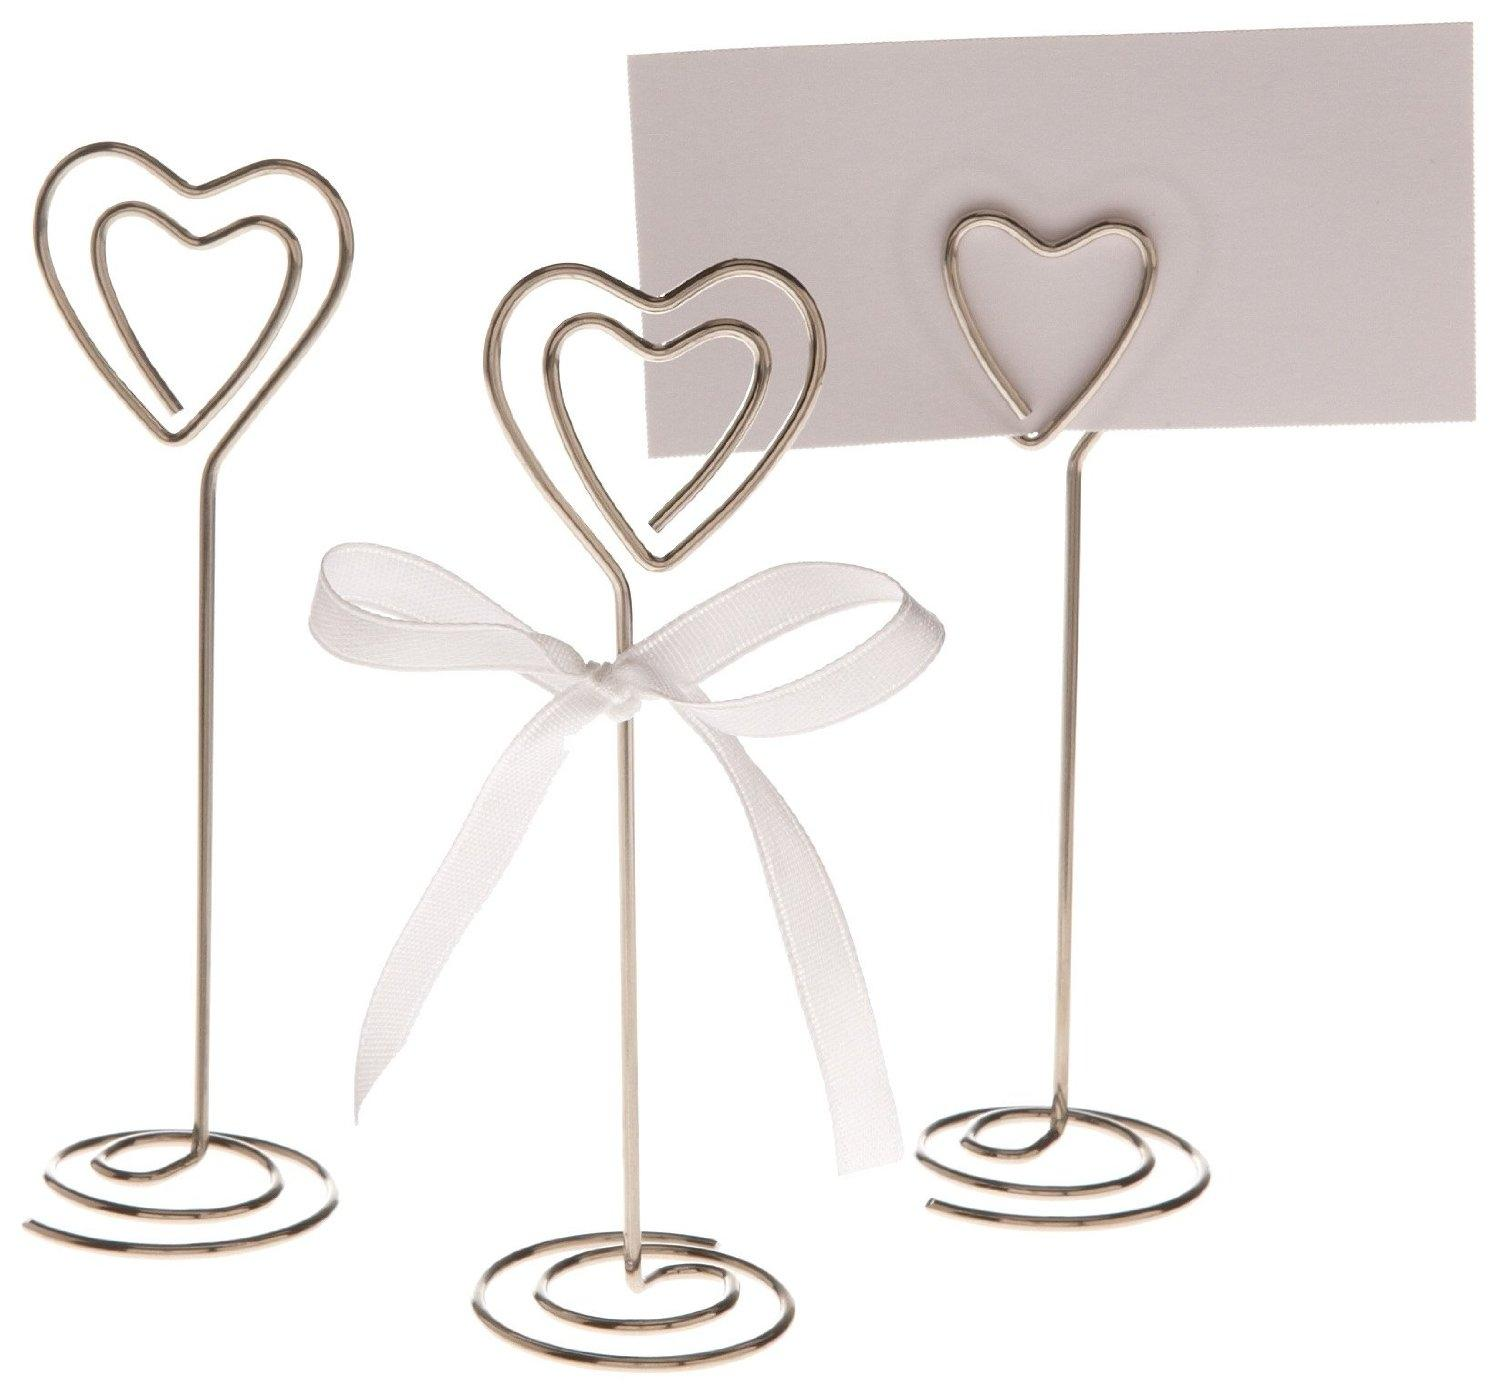 Awesome 50x Heart Shape Table Number Holder Place Card Holders Clips Stands ...